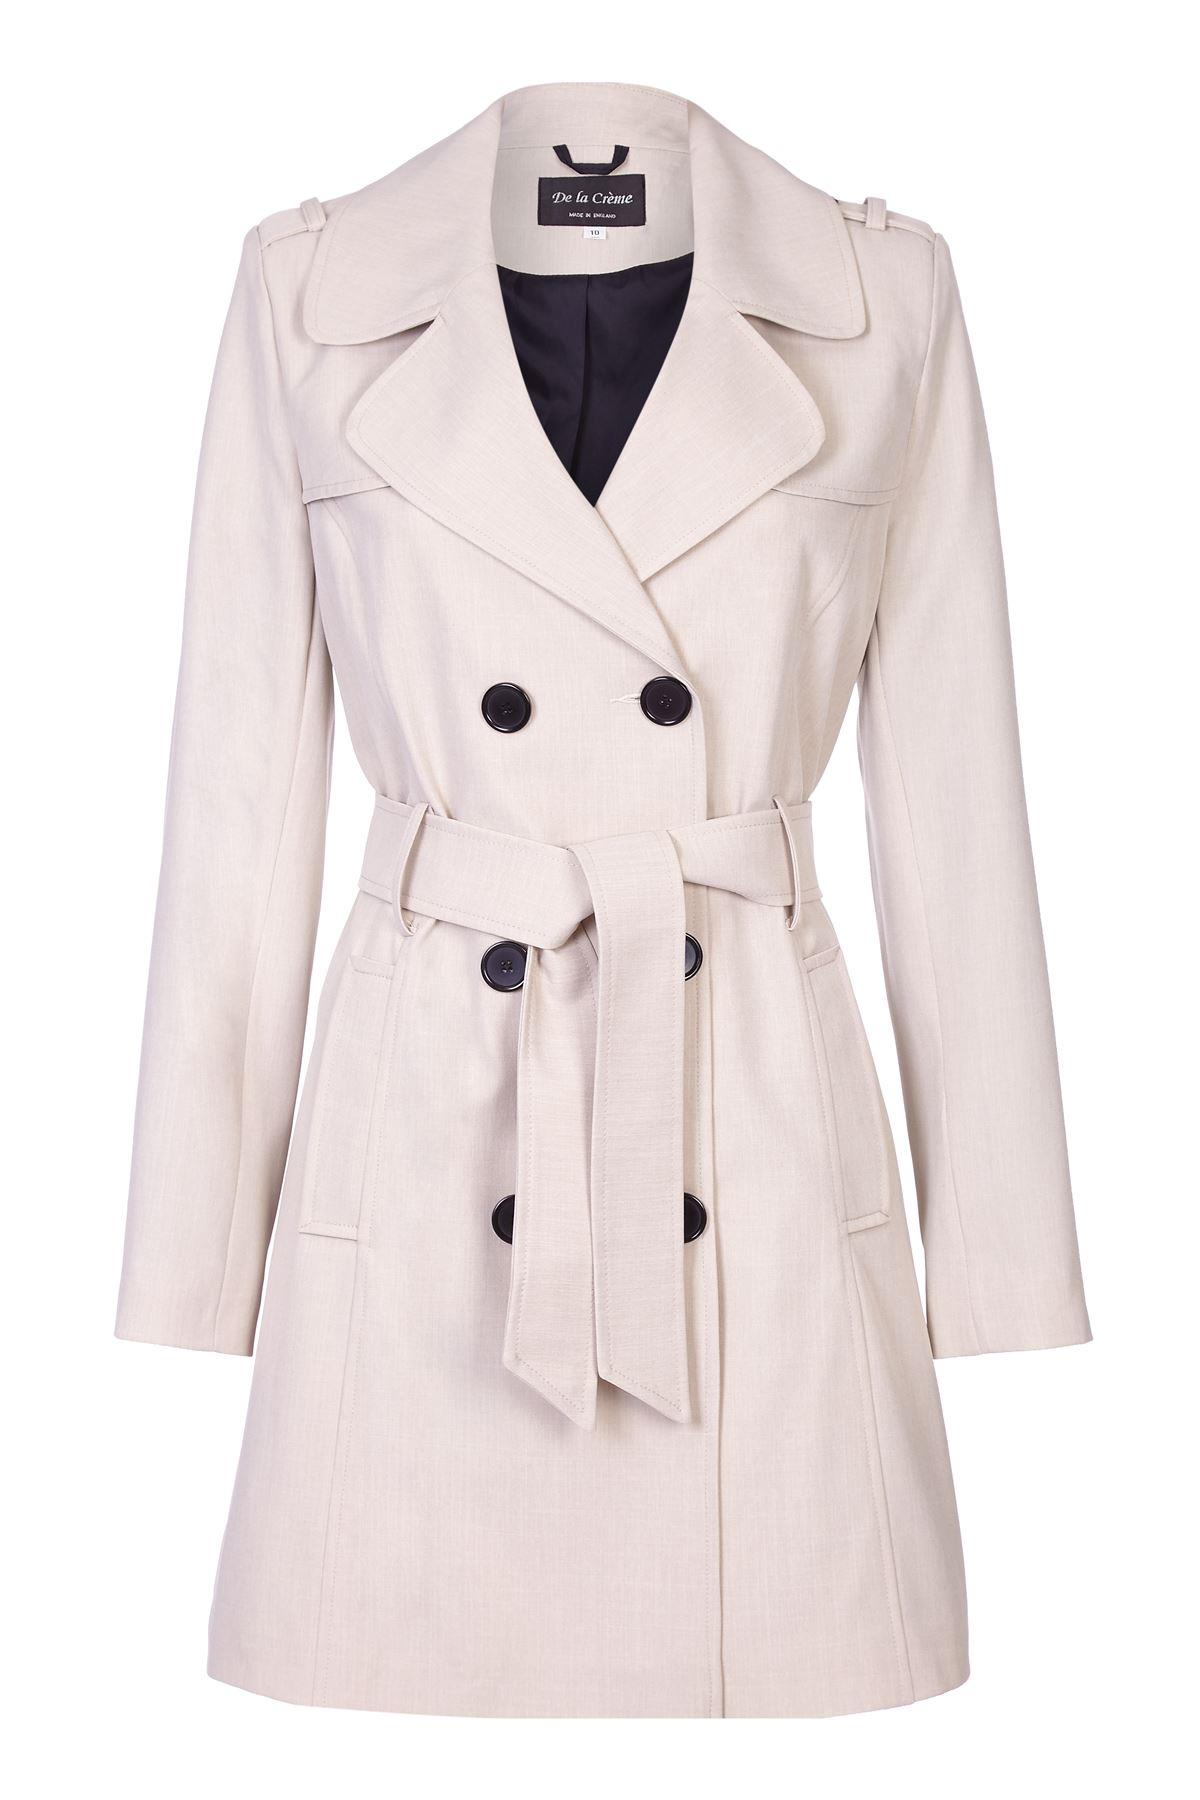 Anastasia - Womens Spring Tie Belted Trench Coat